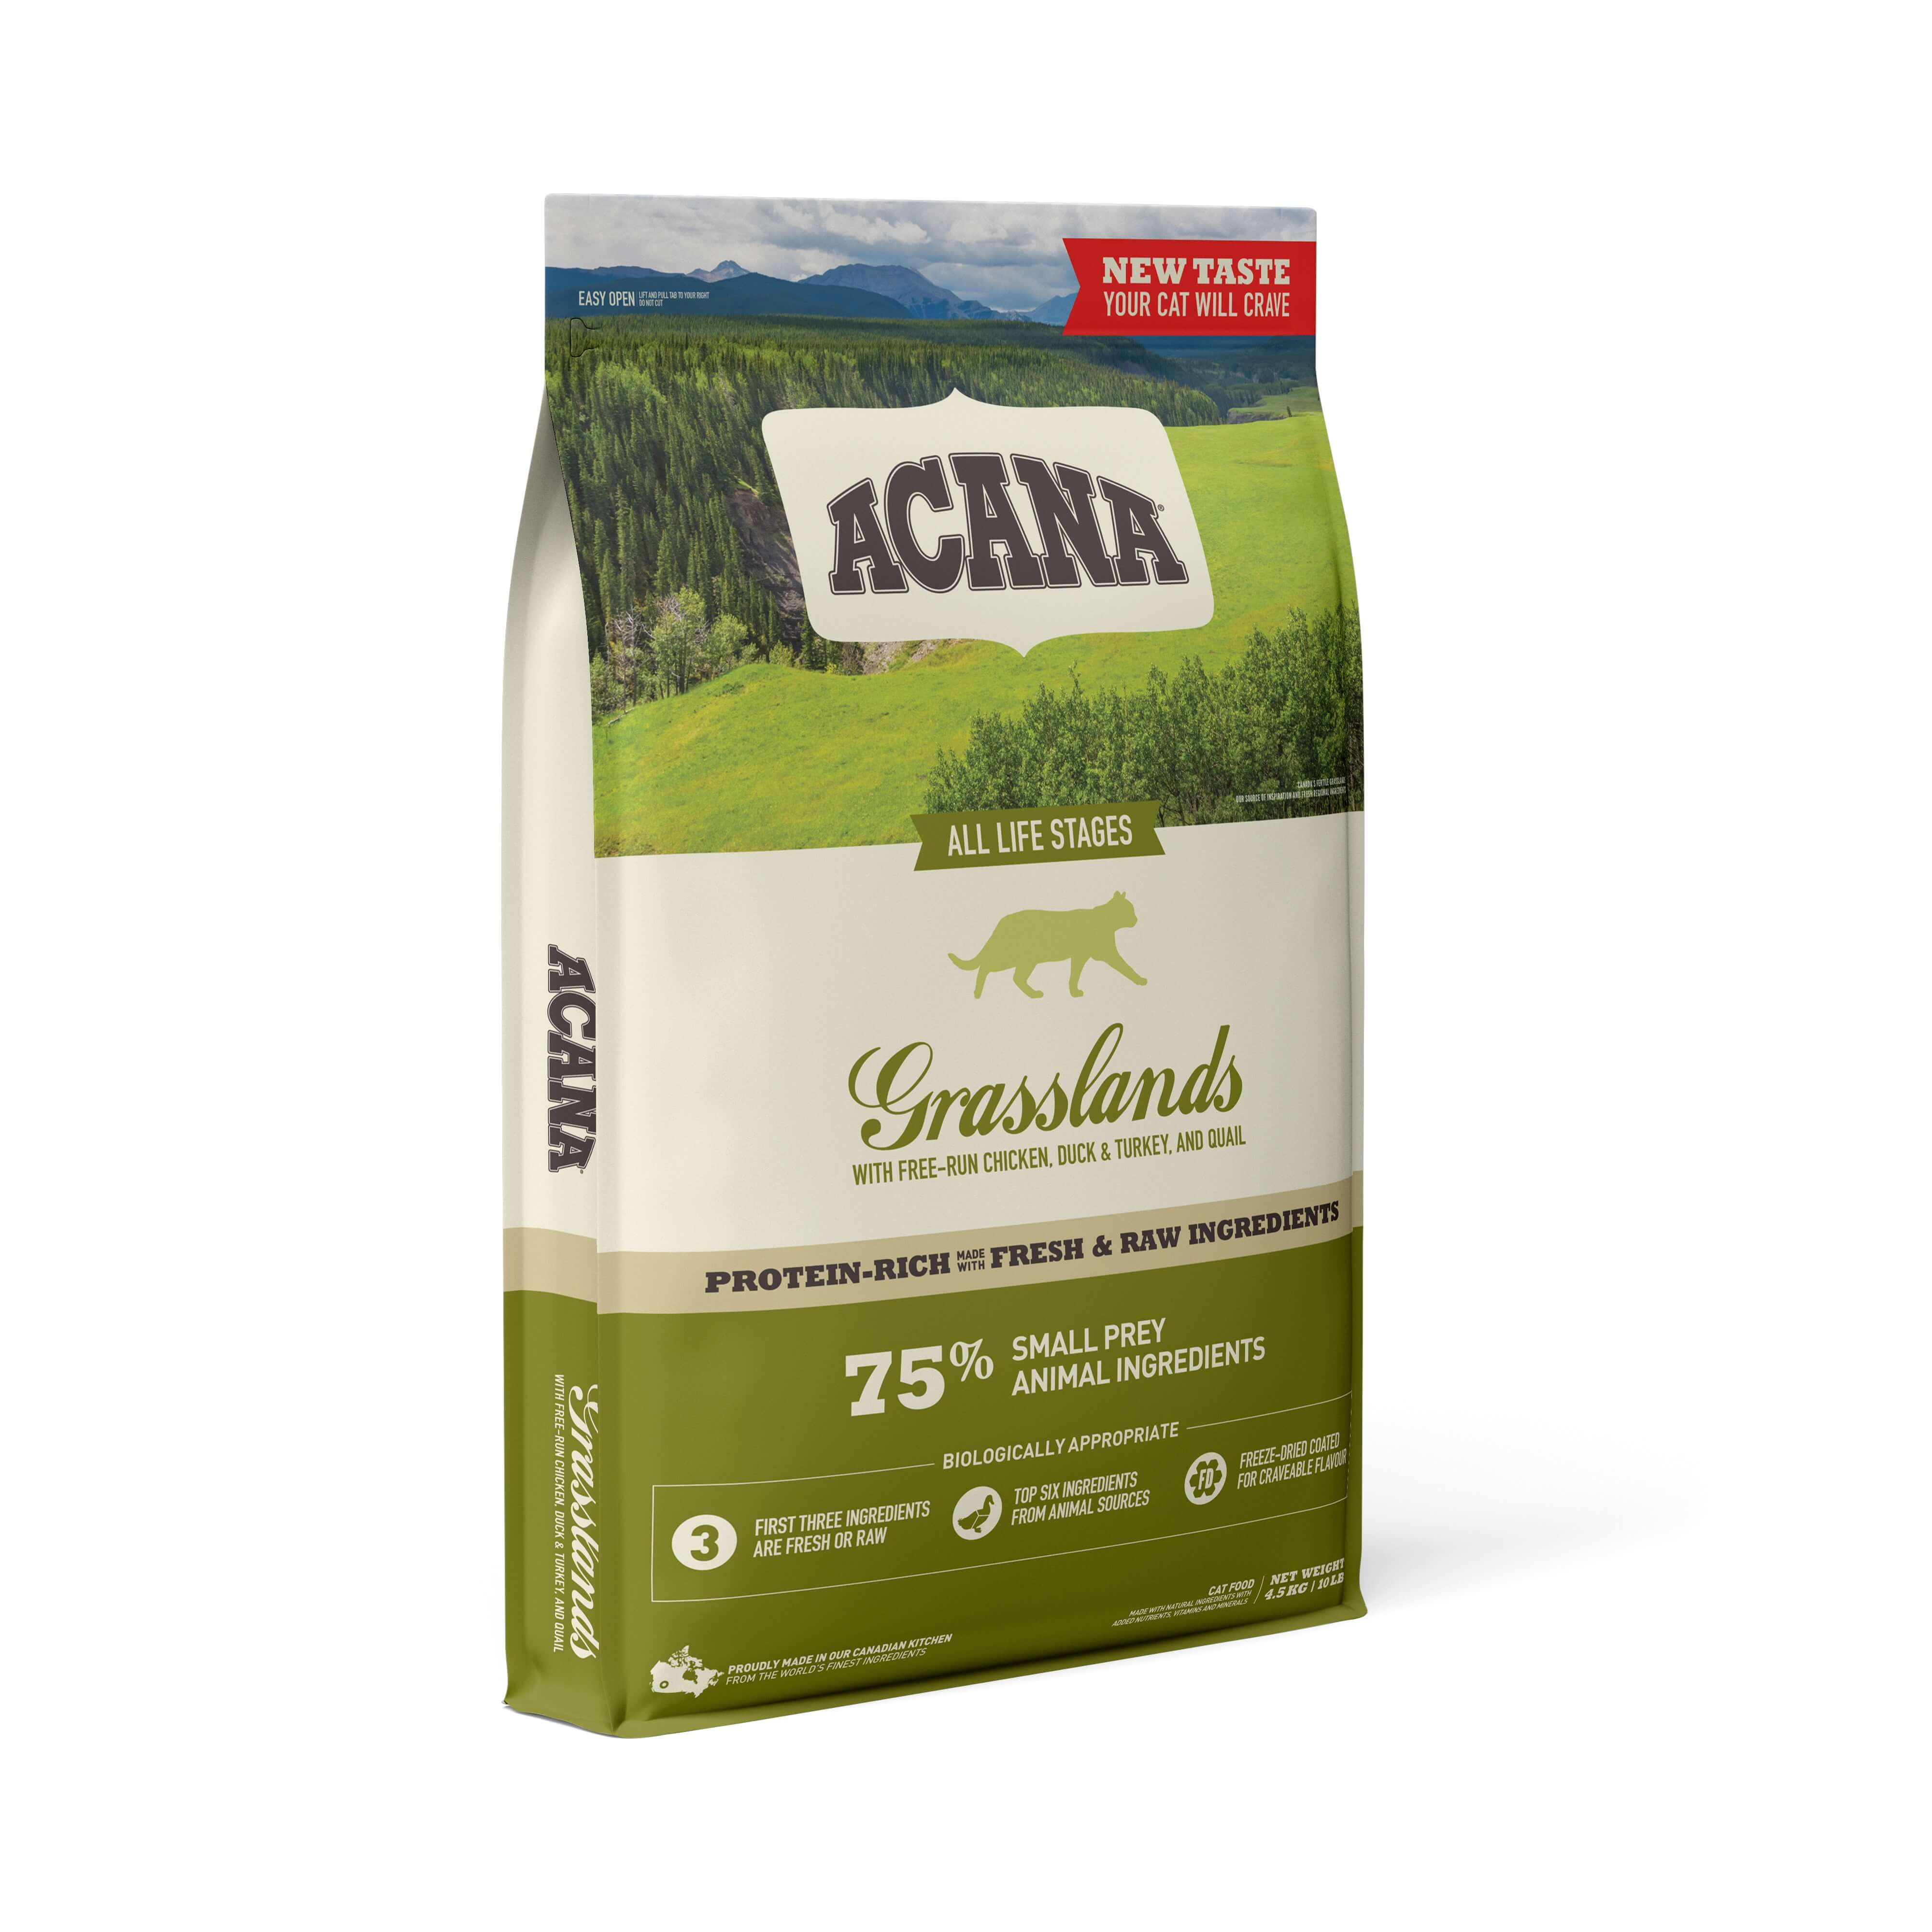 Acana Grasslands Cat | 1.8kg - Click to enlarge picture.